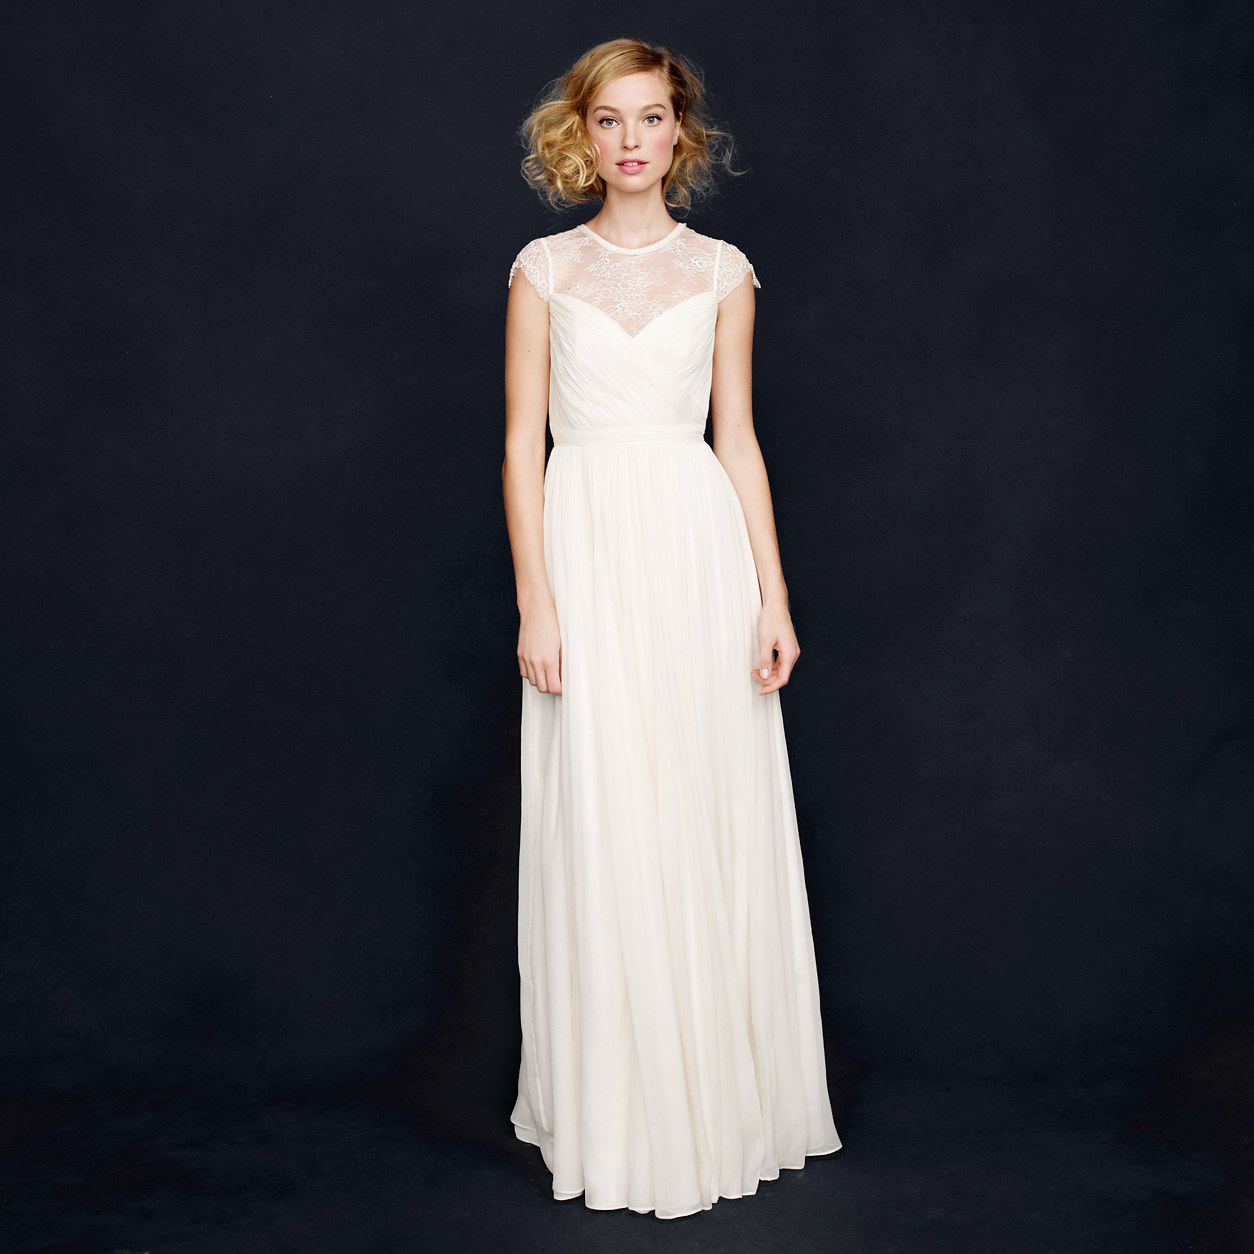 Winter Wedding Dresses On A Budget Gorgeous Dresses Under 1500